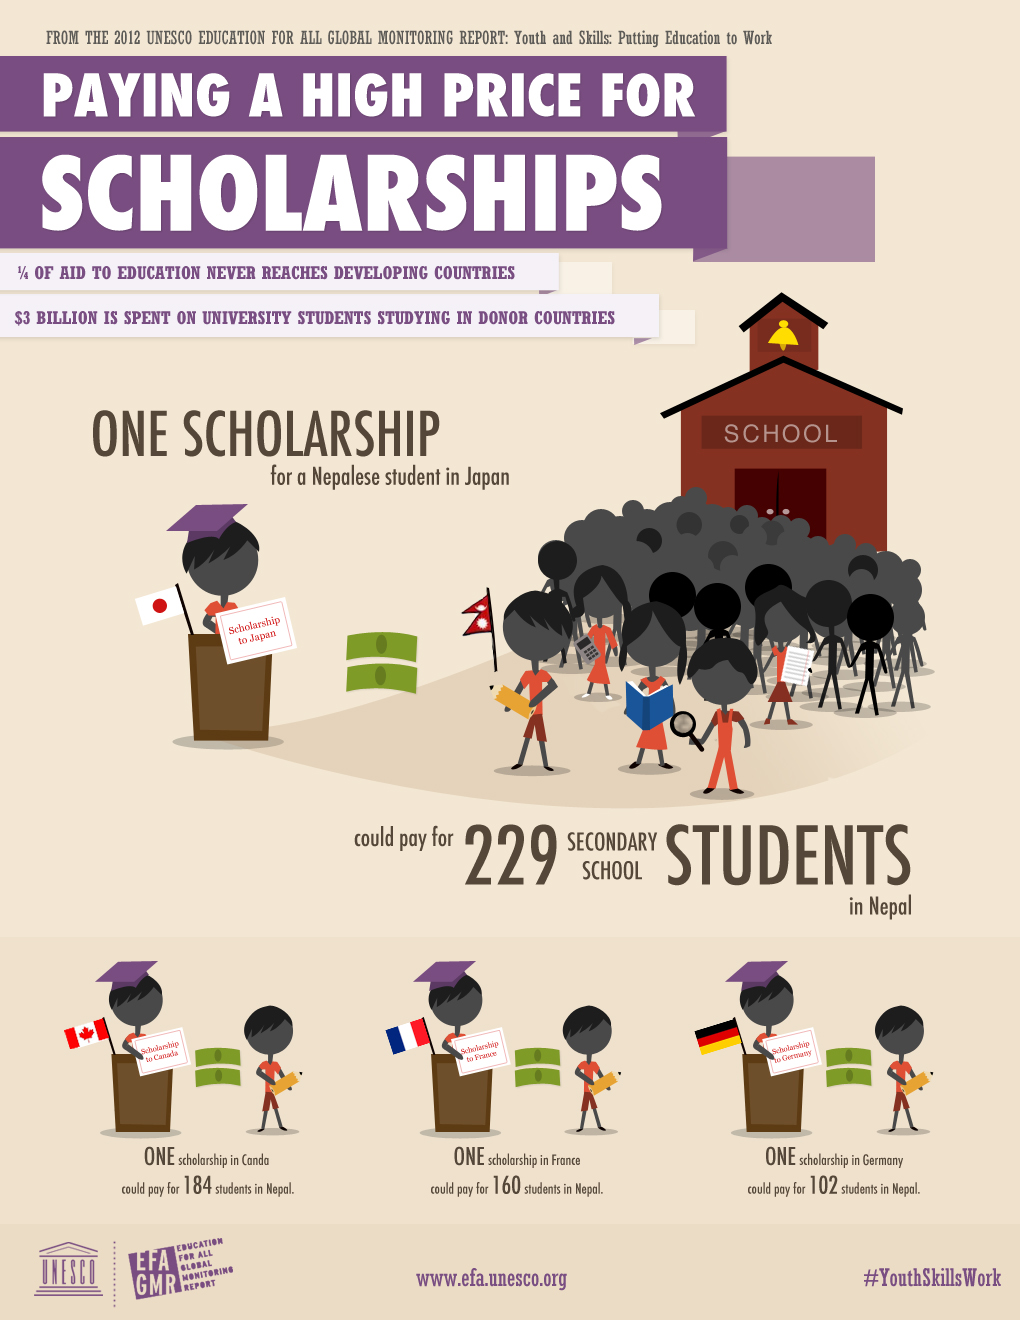 The world's poorest children are paying a high price for scholarships